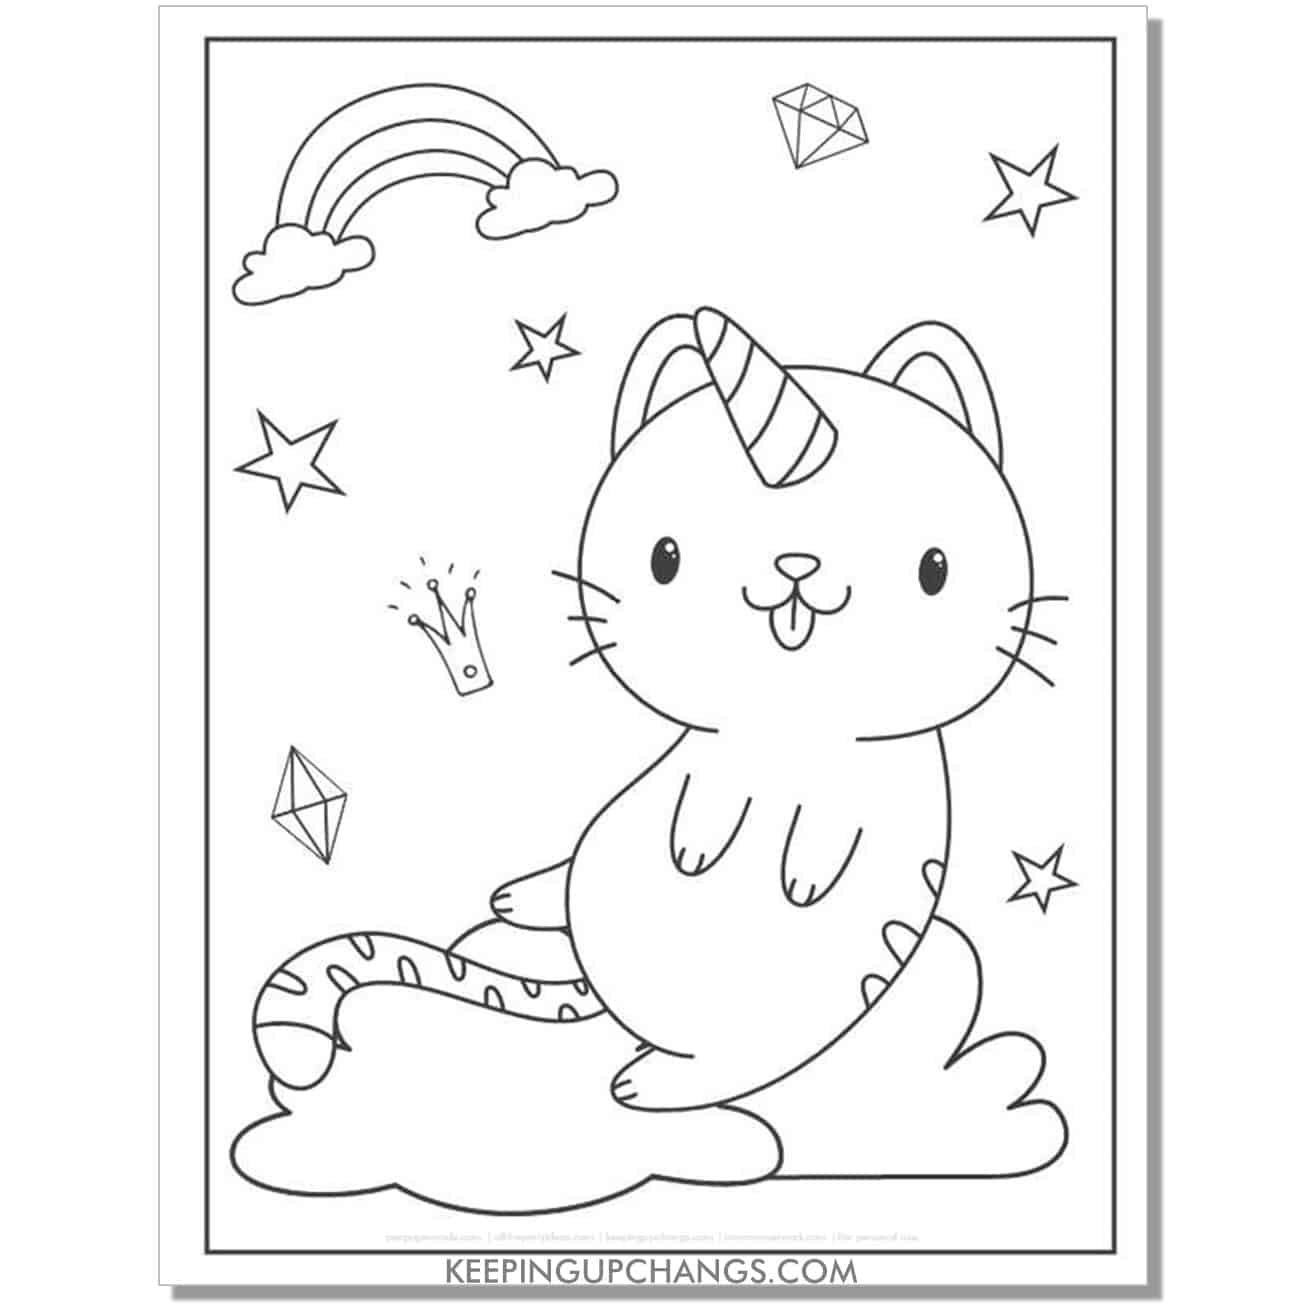 cat unicorn with tongue sticking out coloring page.